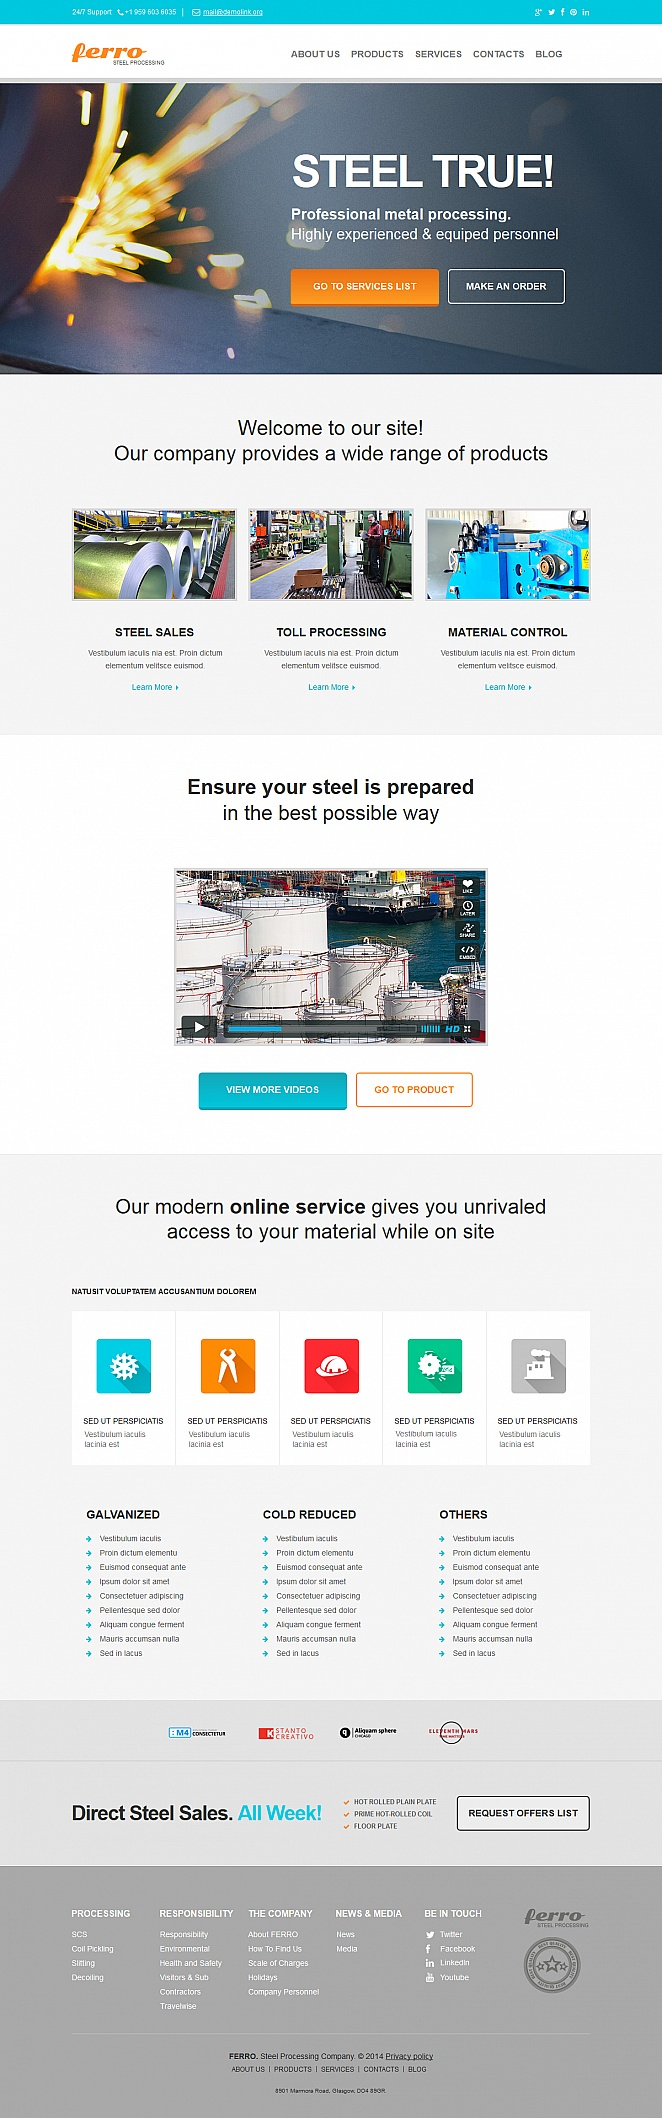 Steel Processing Website Template with Flat UI - image